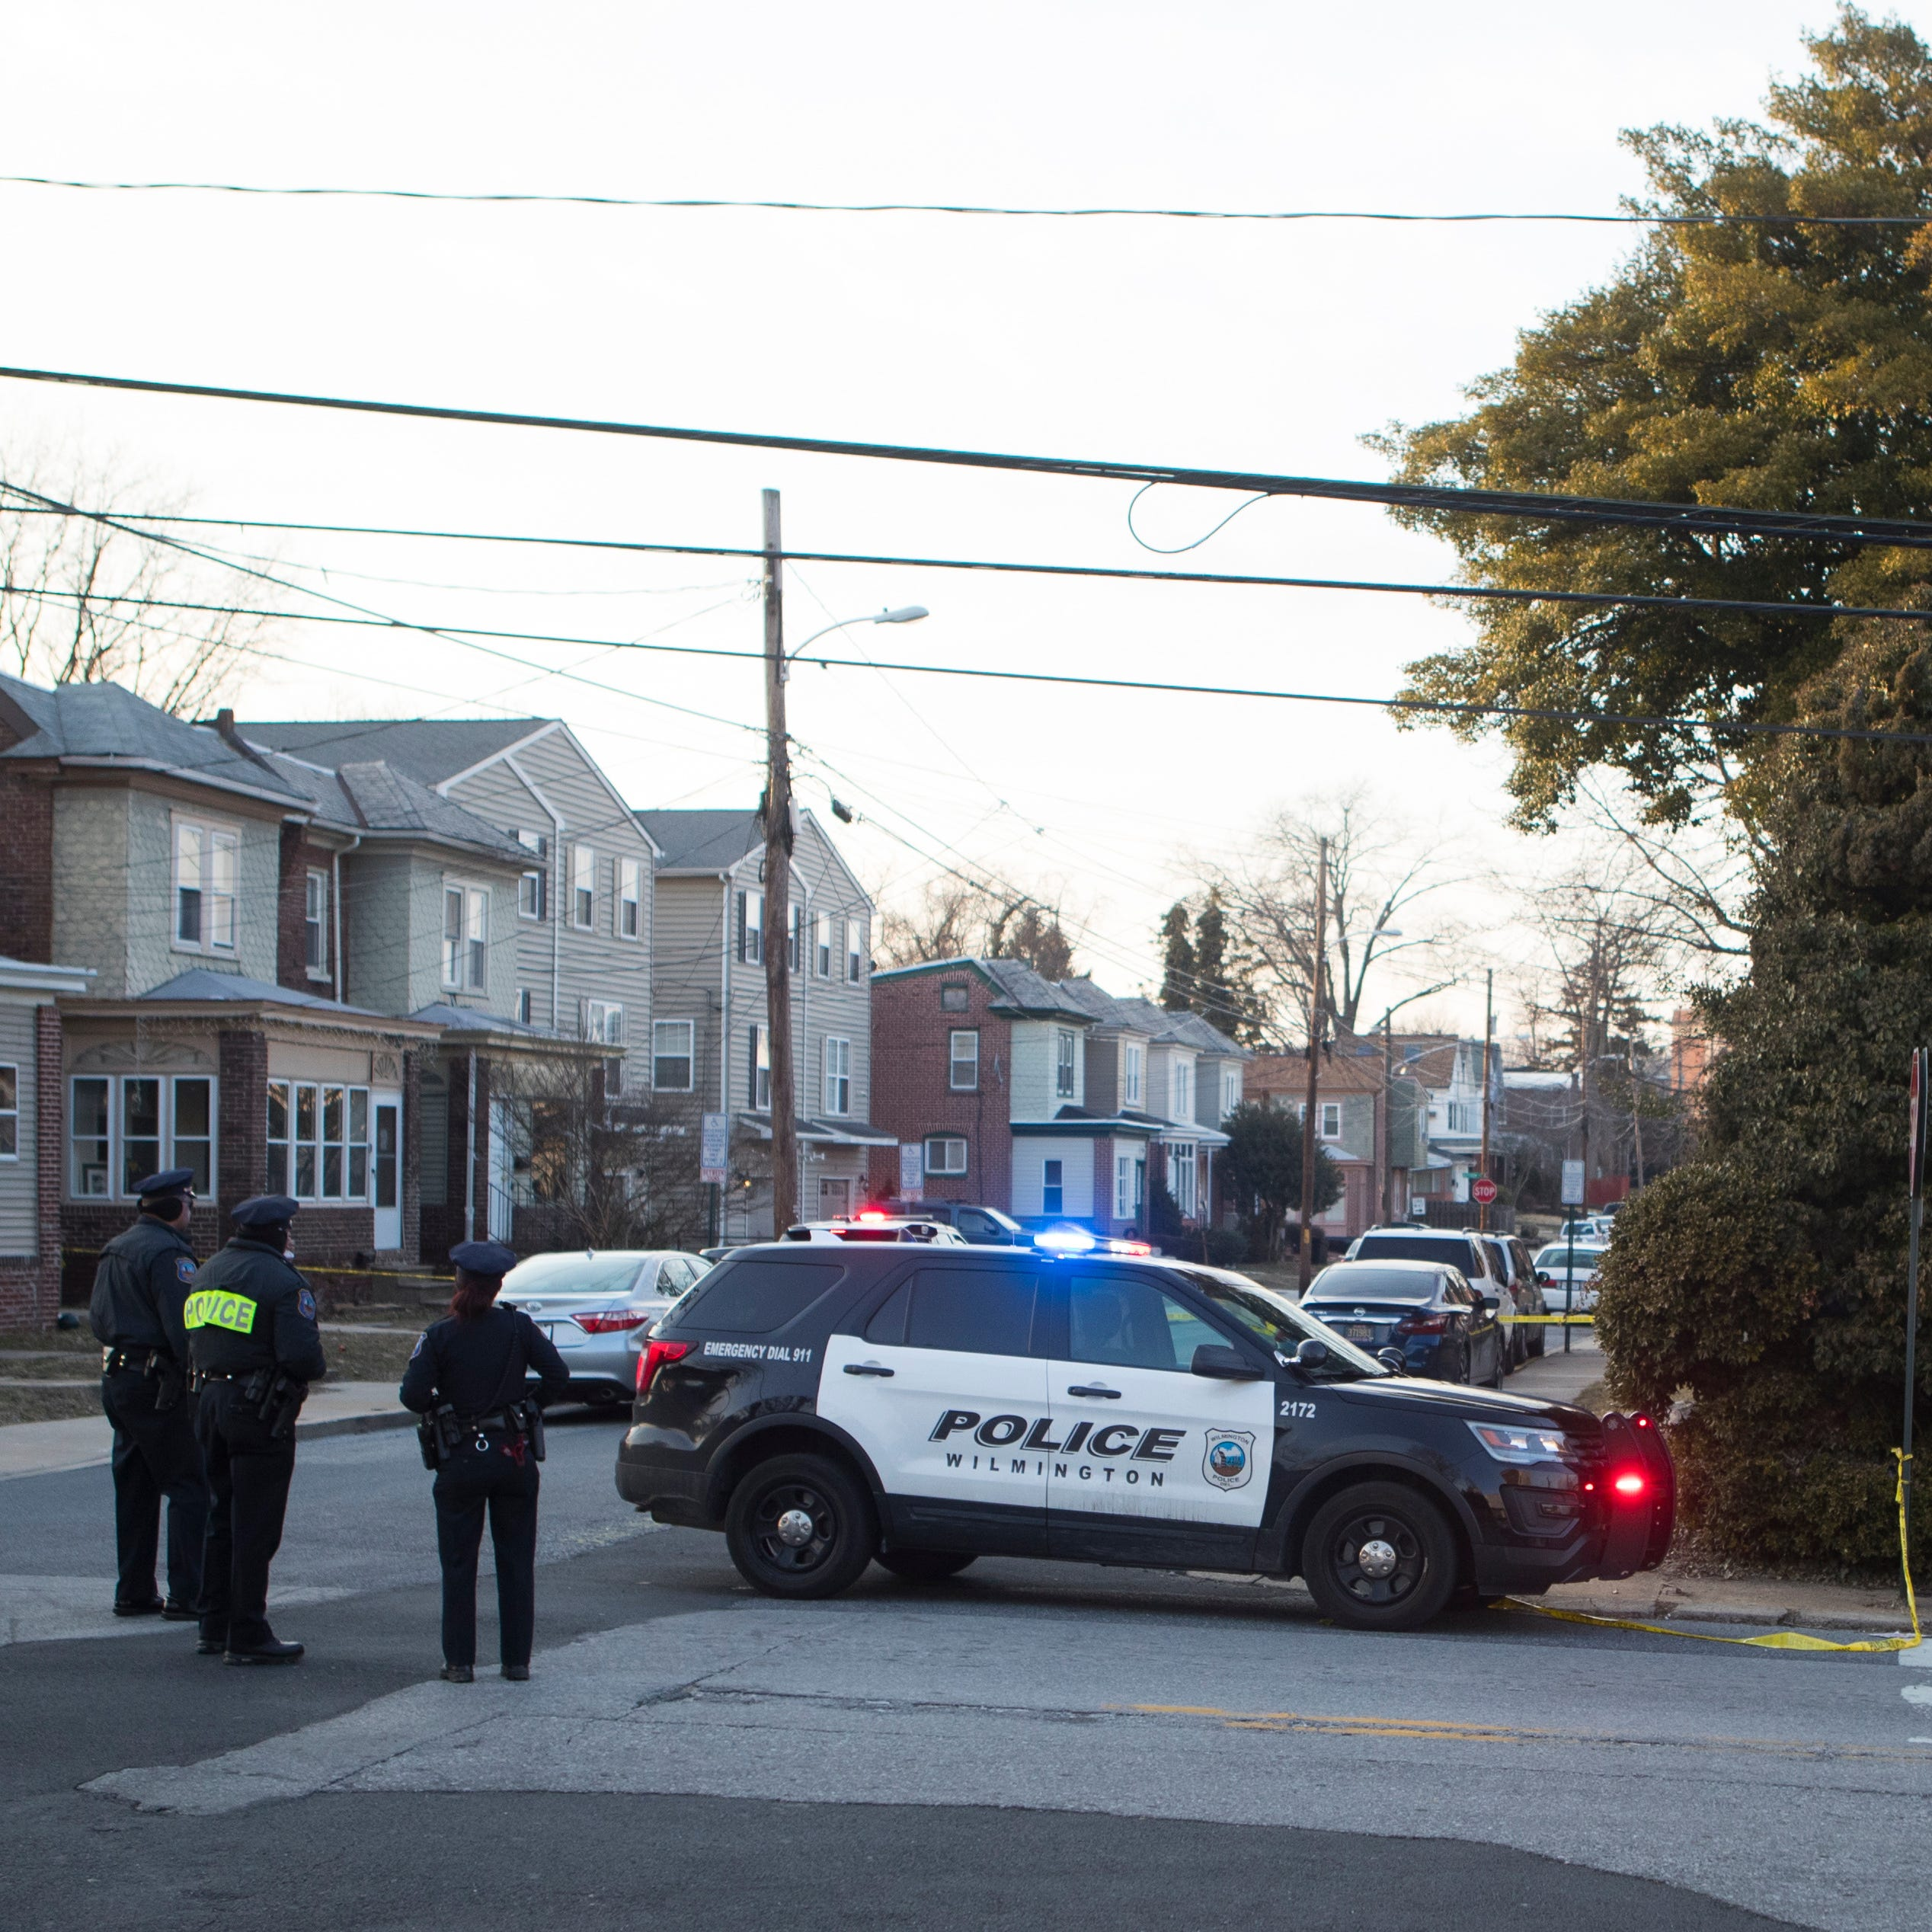 Wilmington Police investigating two shootings that appear to be a domestic incident, woman in critical condition